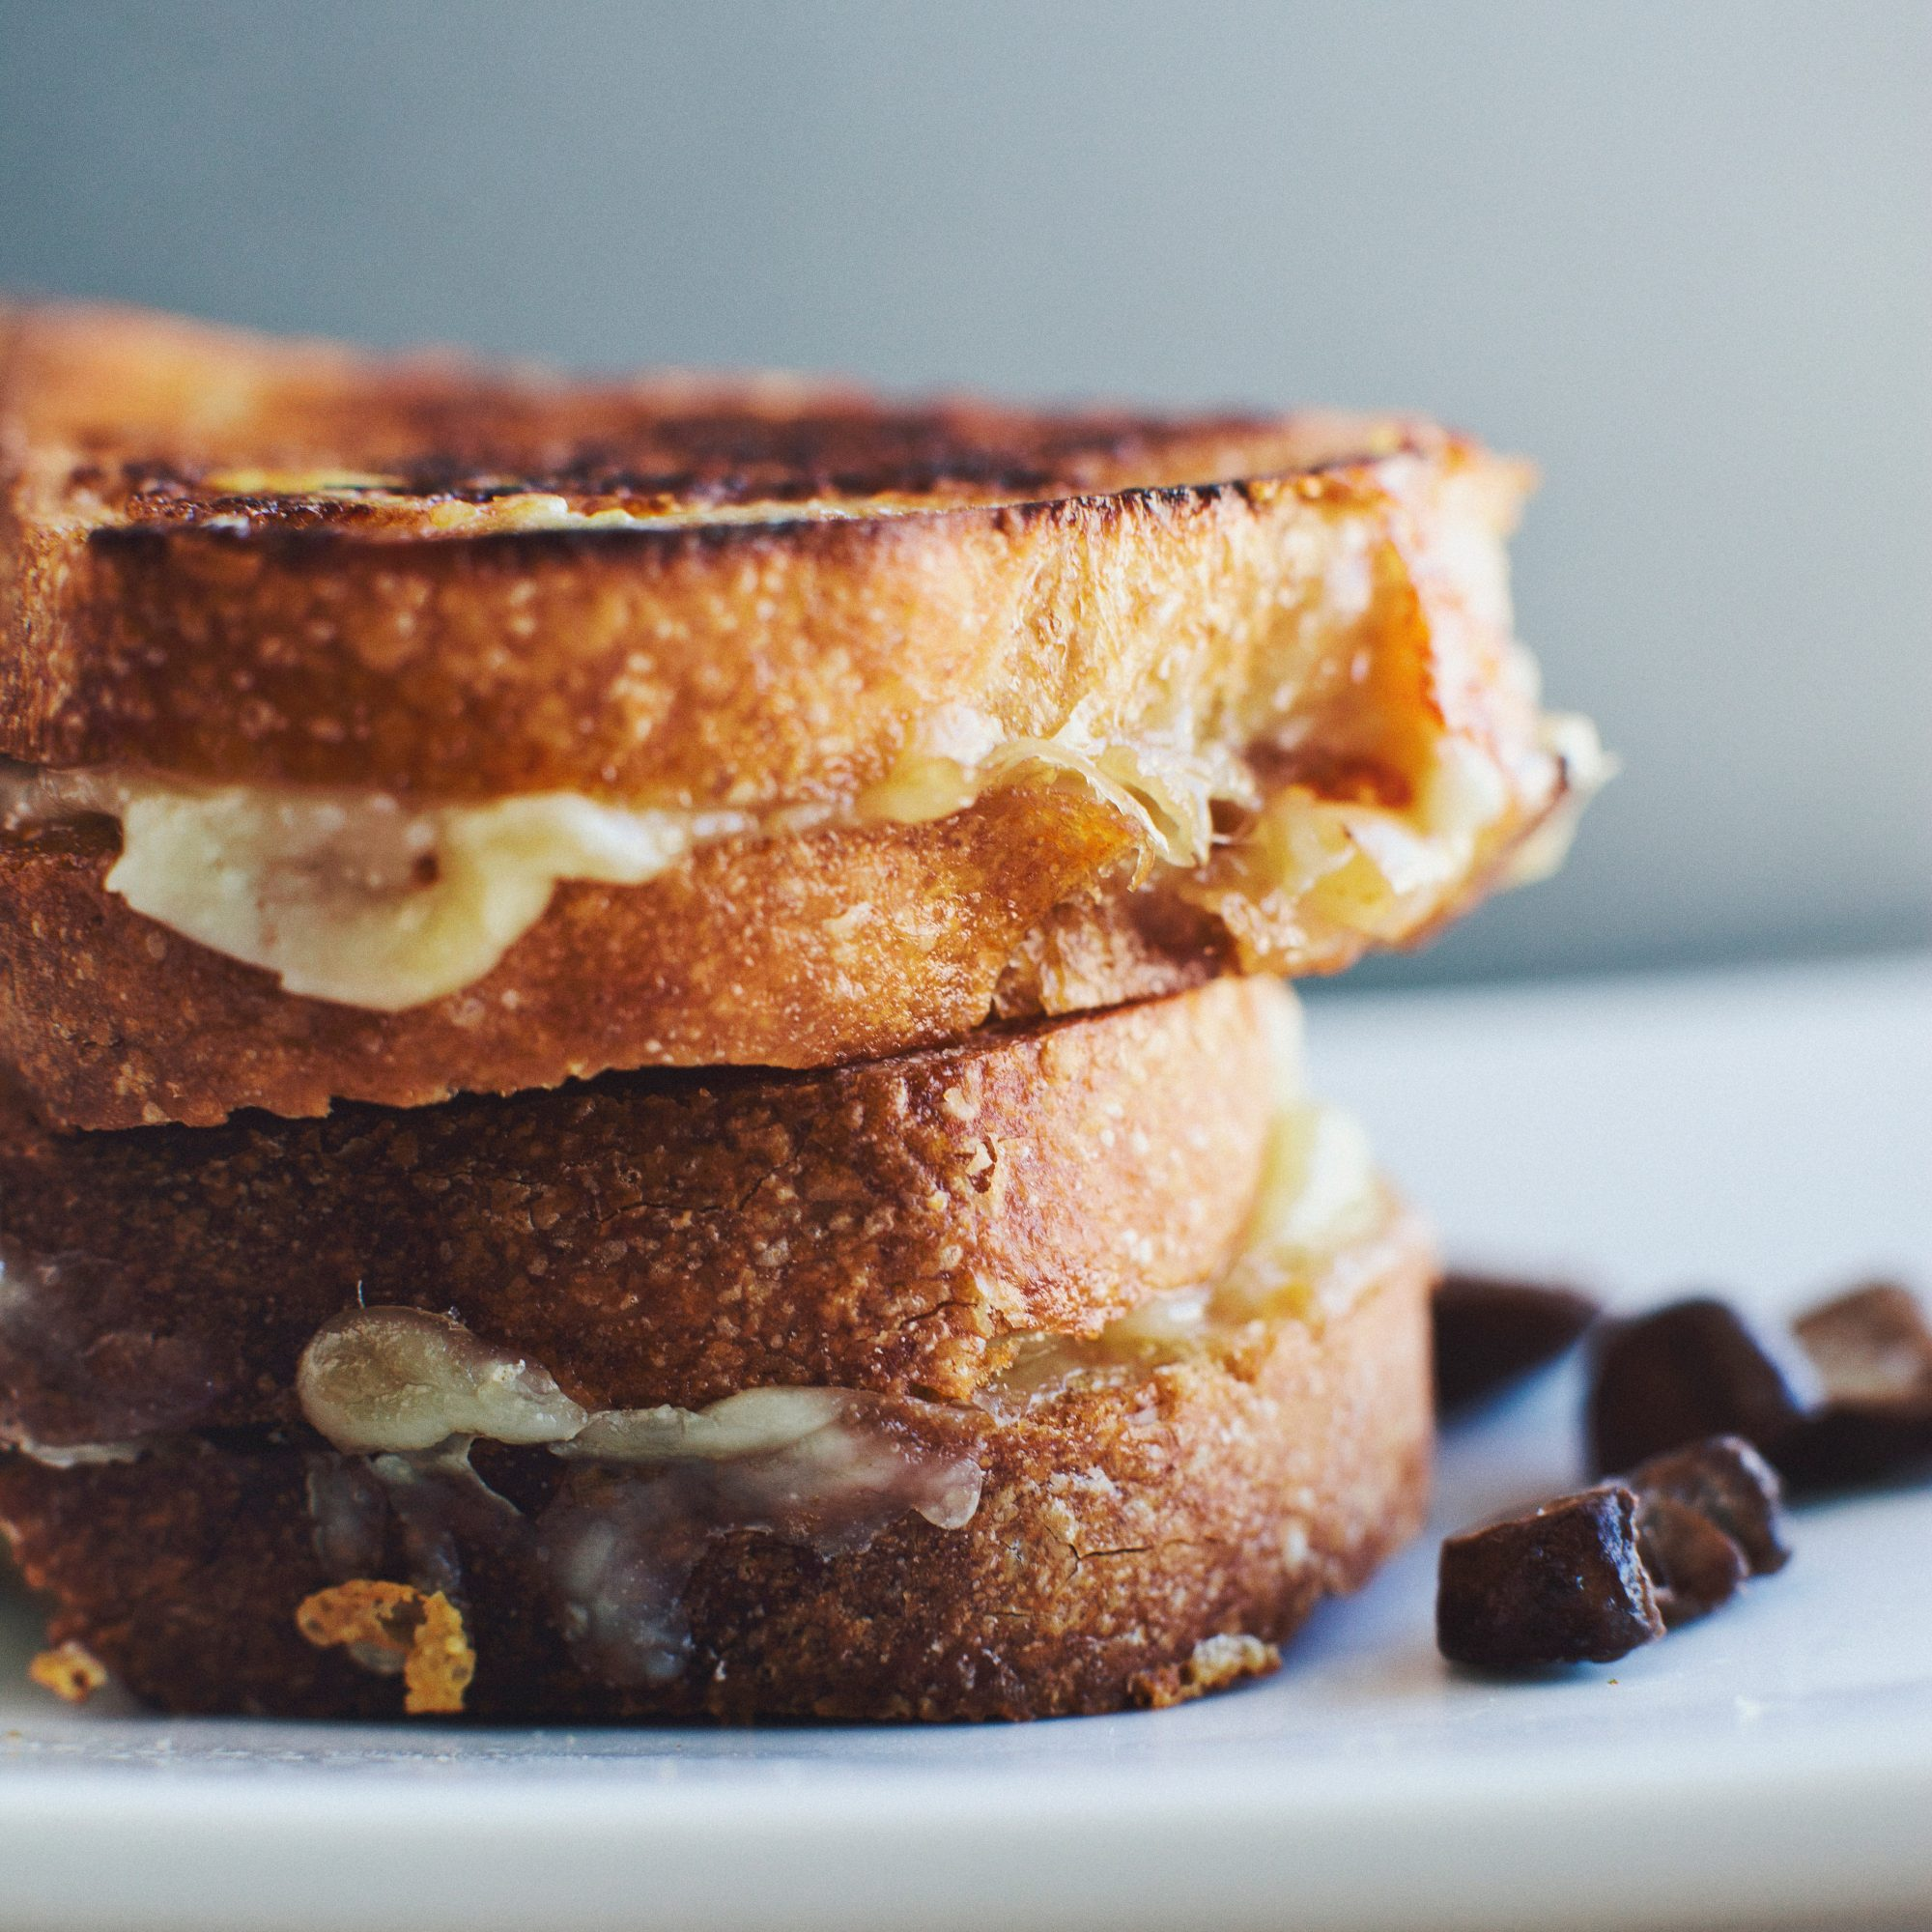 Grilled Fontina, Mushroom, and Sage Sandwiches